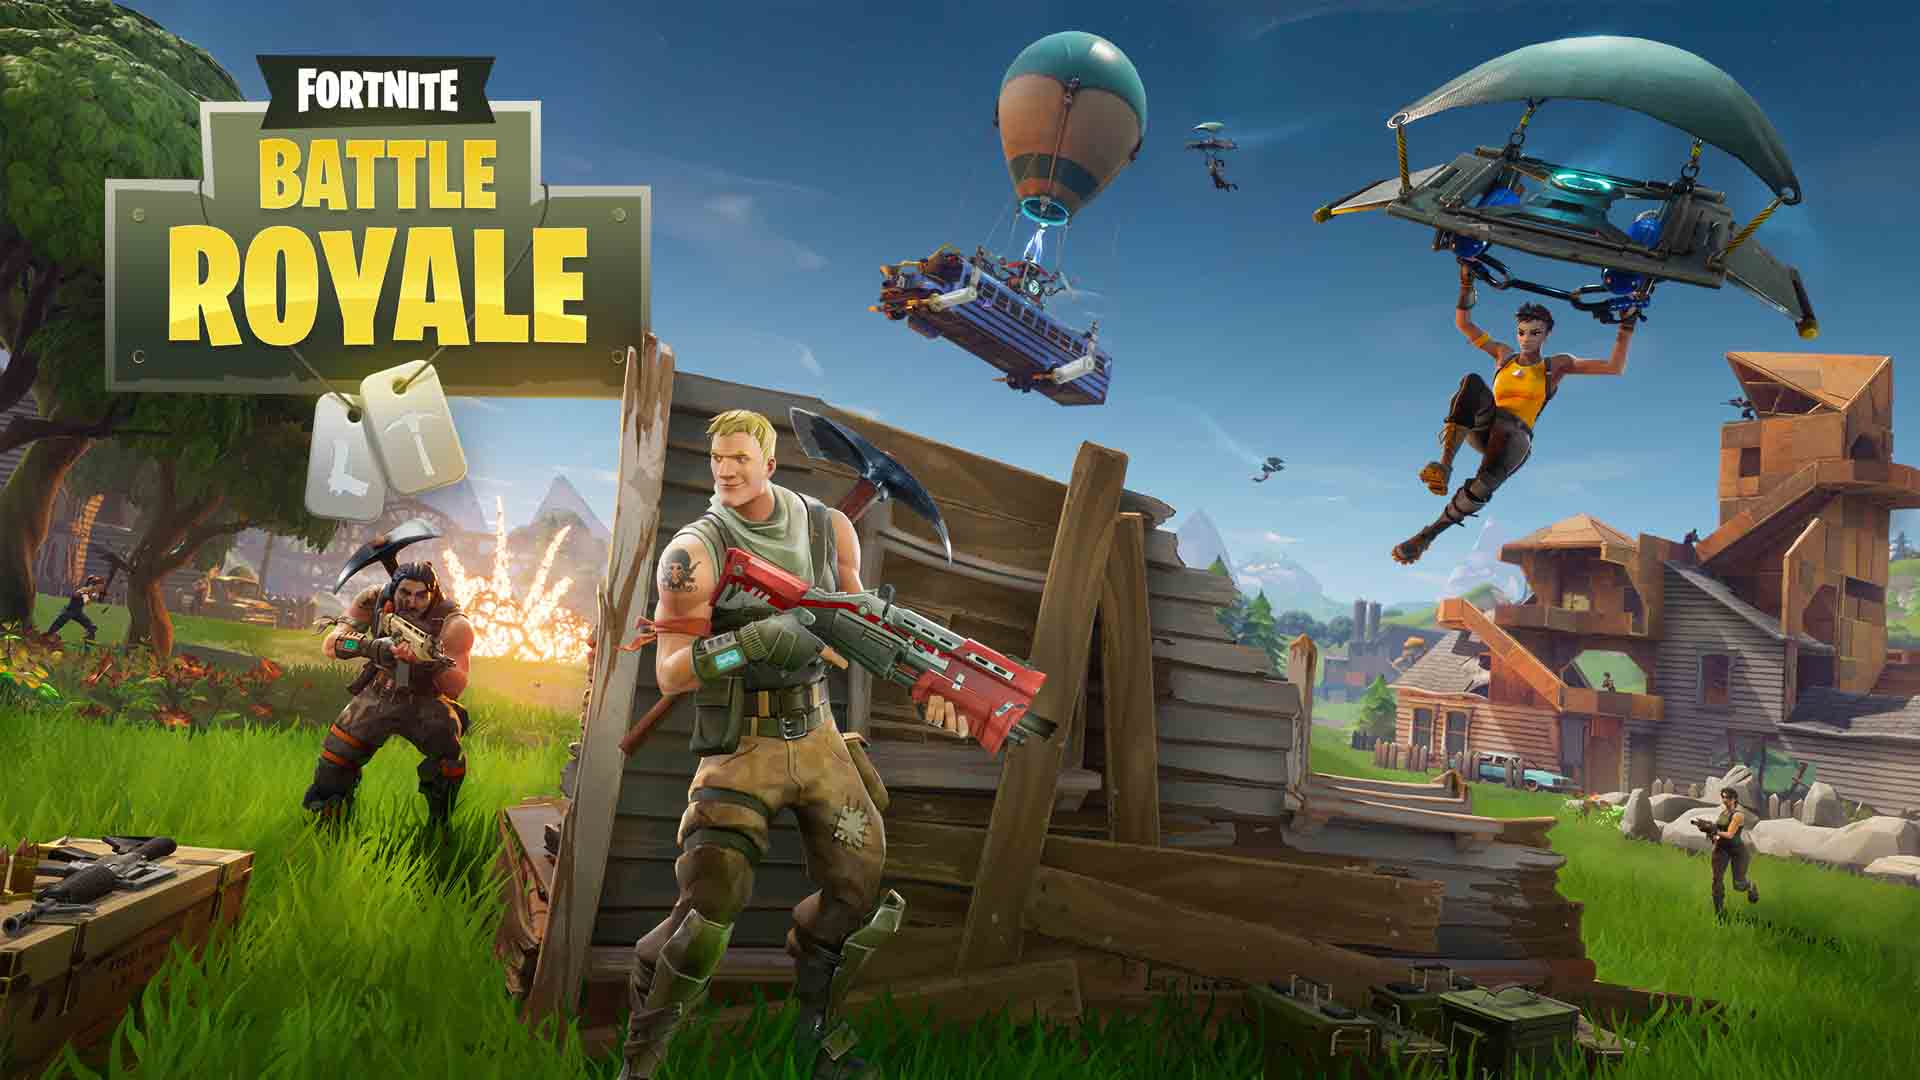 What would you change about Fortnite?